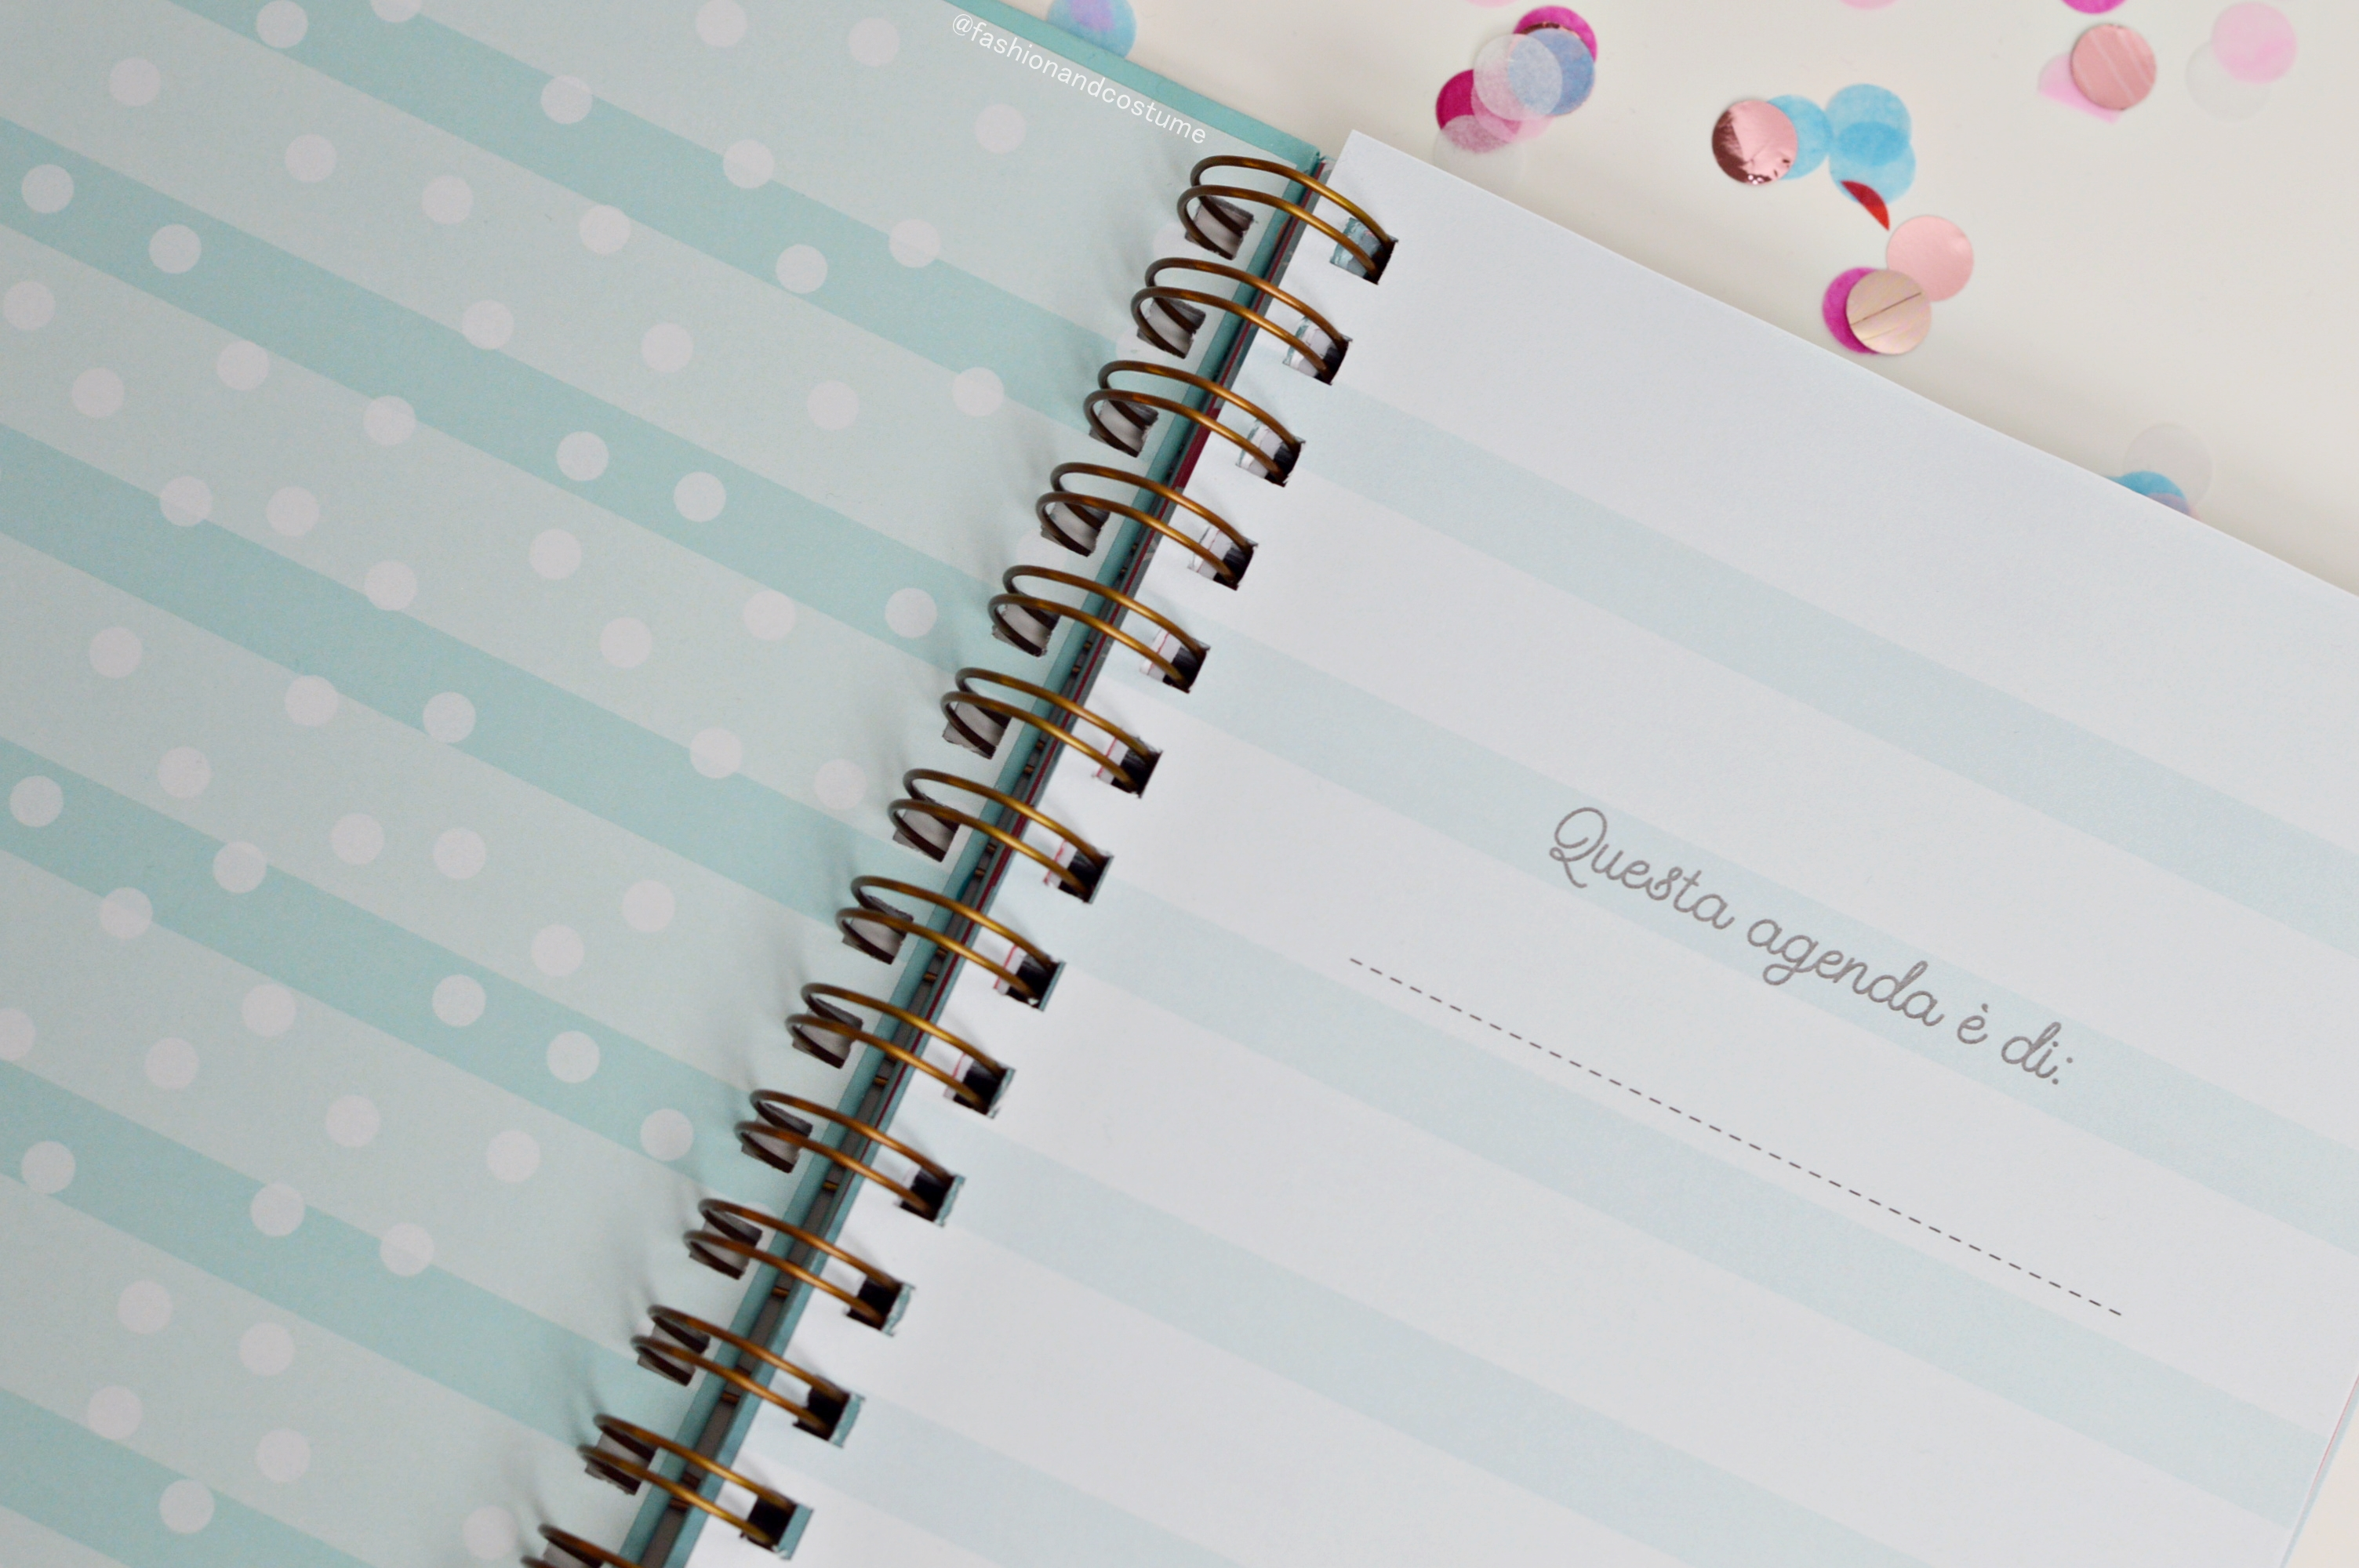 agenda-planner-2019-settimanale-weekly-giulia-lepetitrabbit-le-petit-rabbit-fashion-and-costume-fashionandcostume-graphic-designer-sticker-planning